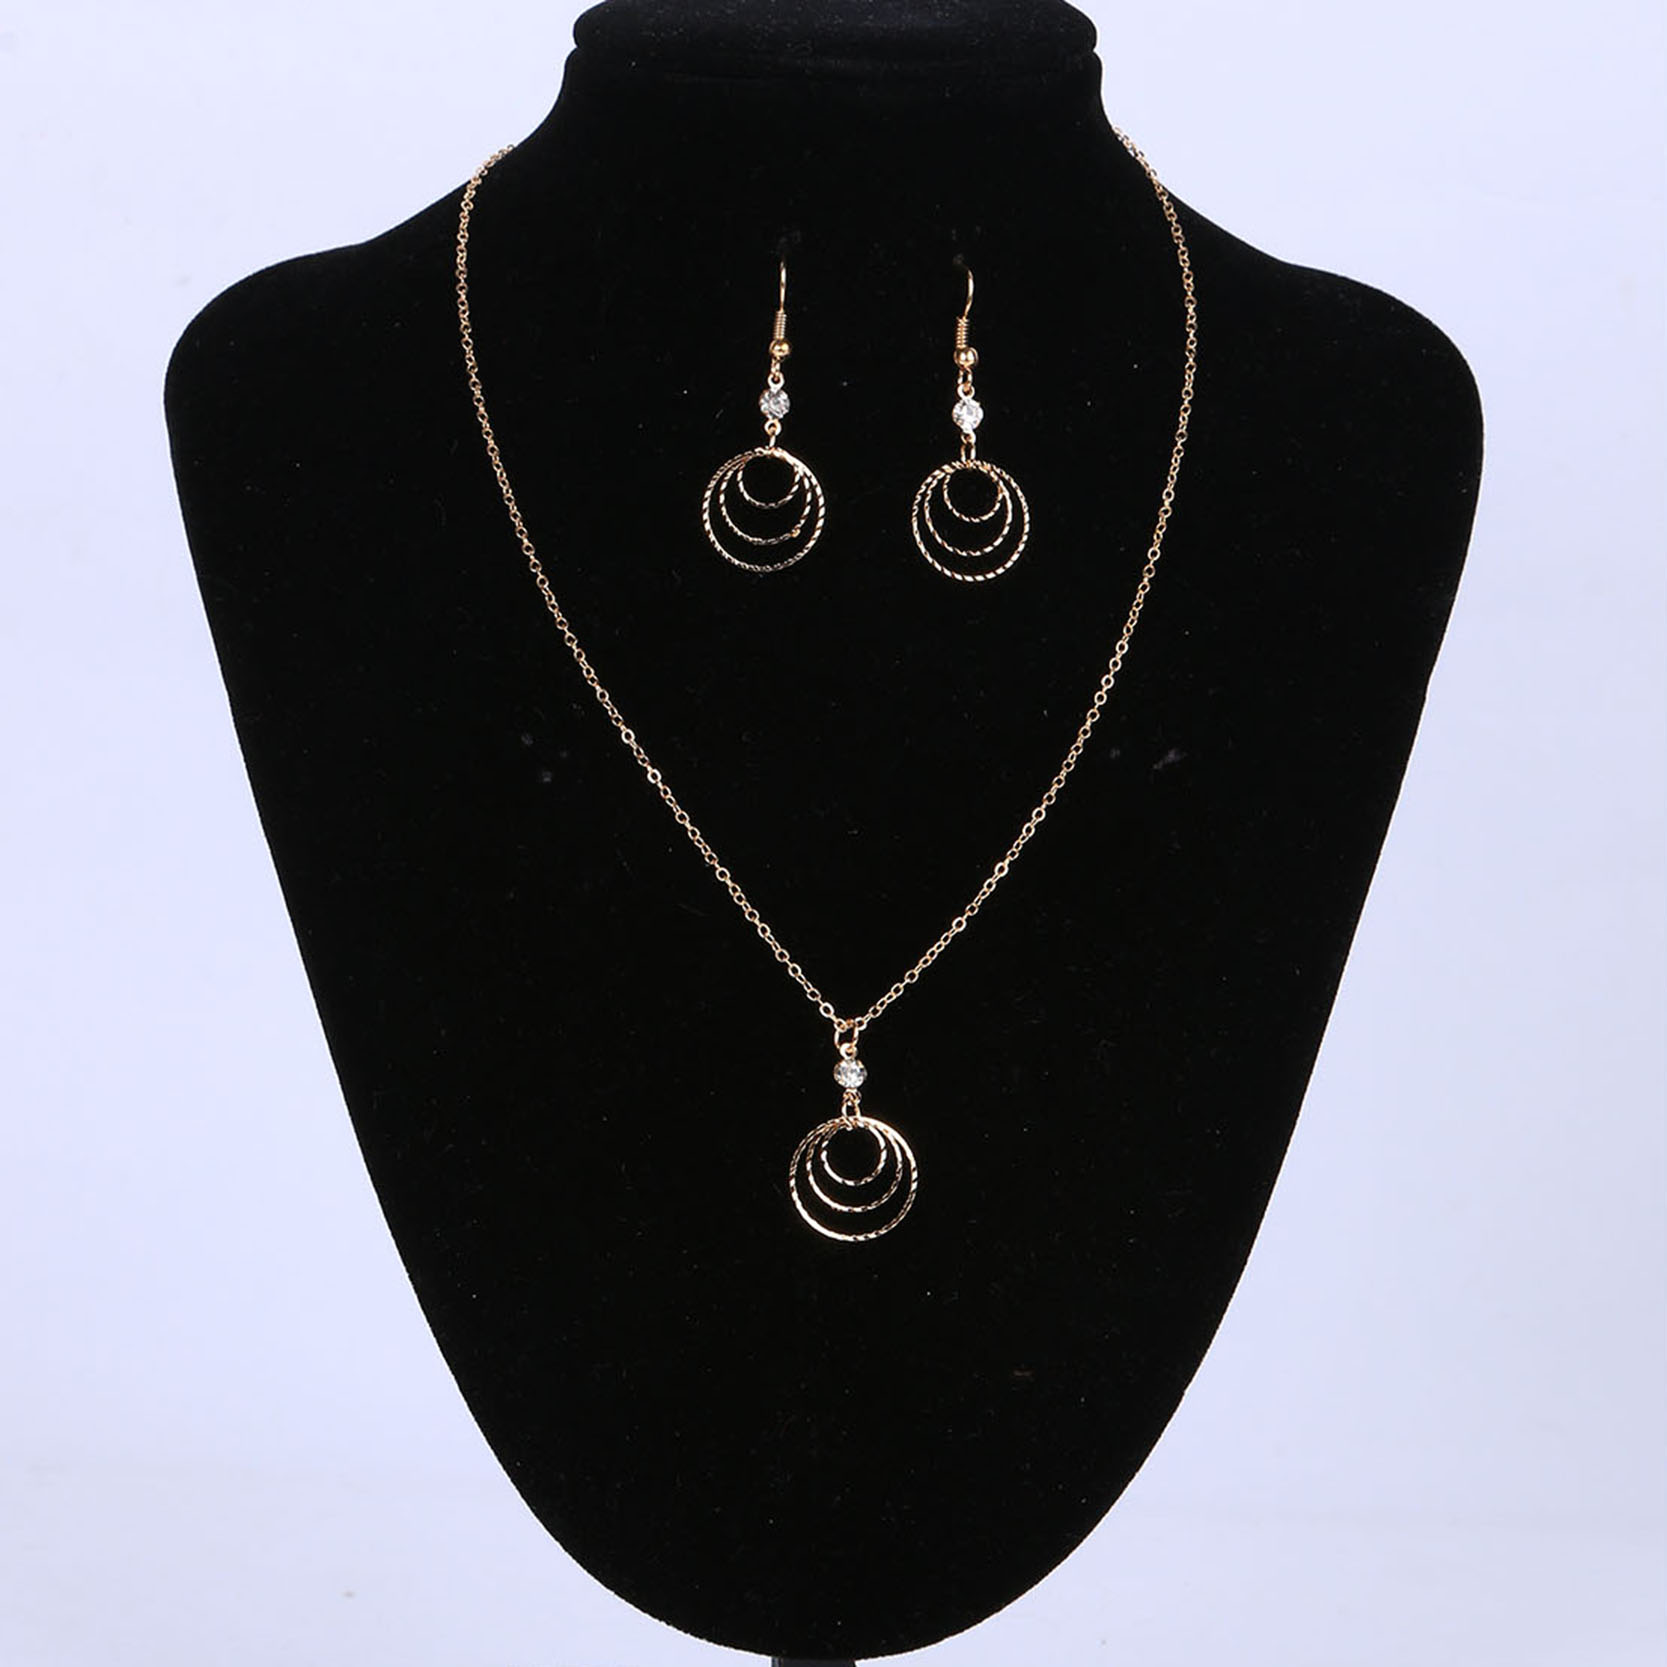 ᐂEarring and Necklace Jewelry Set Gold Color with Multi layer